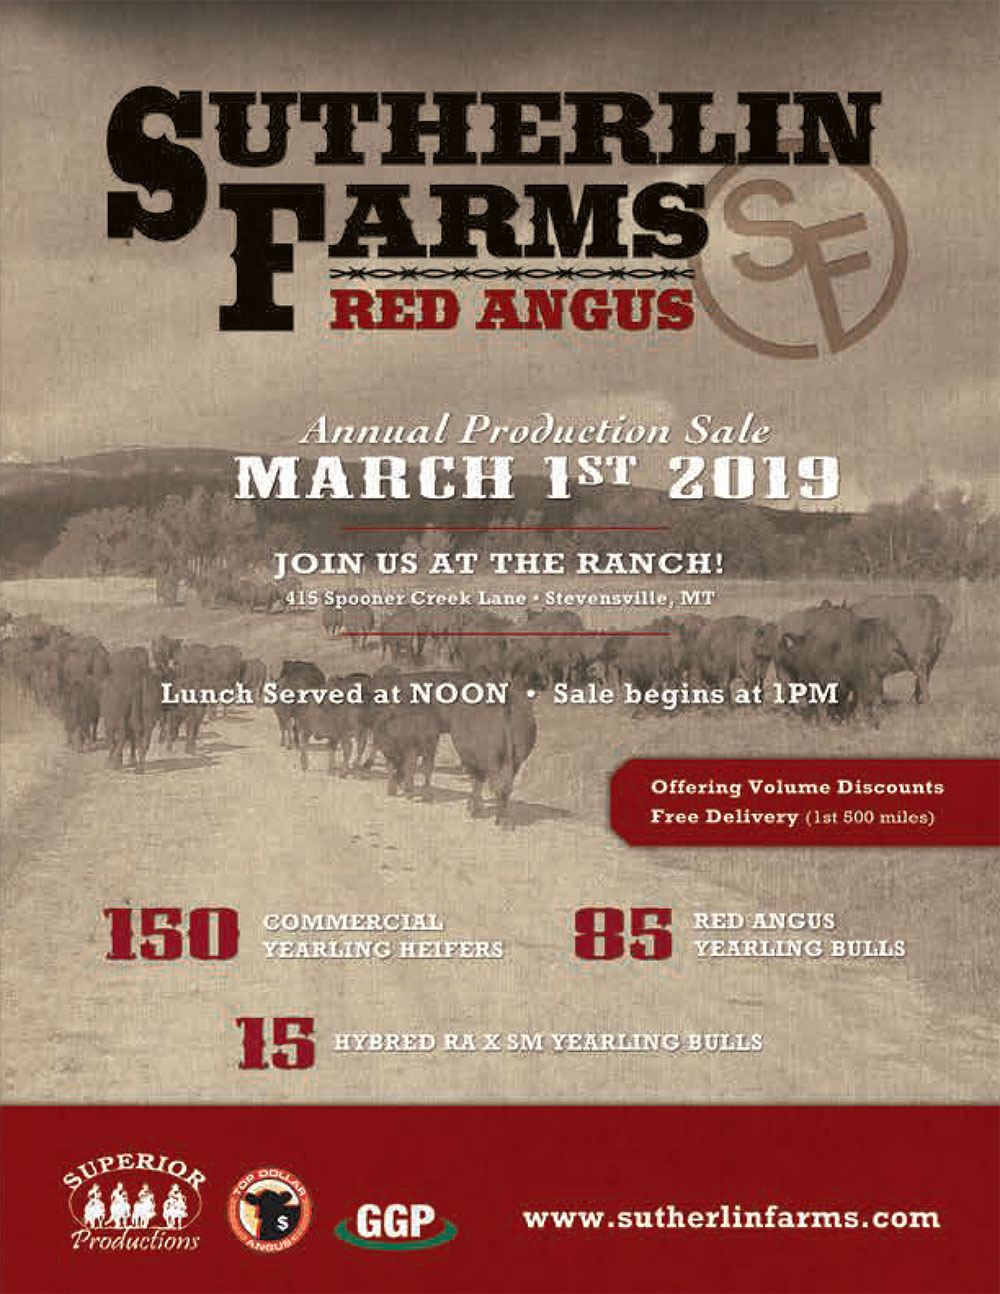 Sutherlin Farms Red Angus Sale